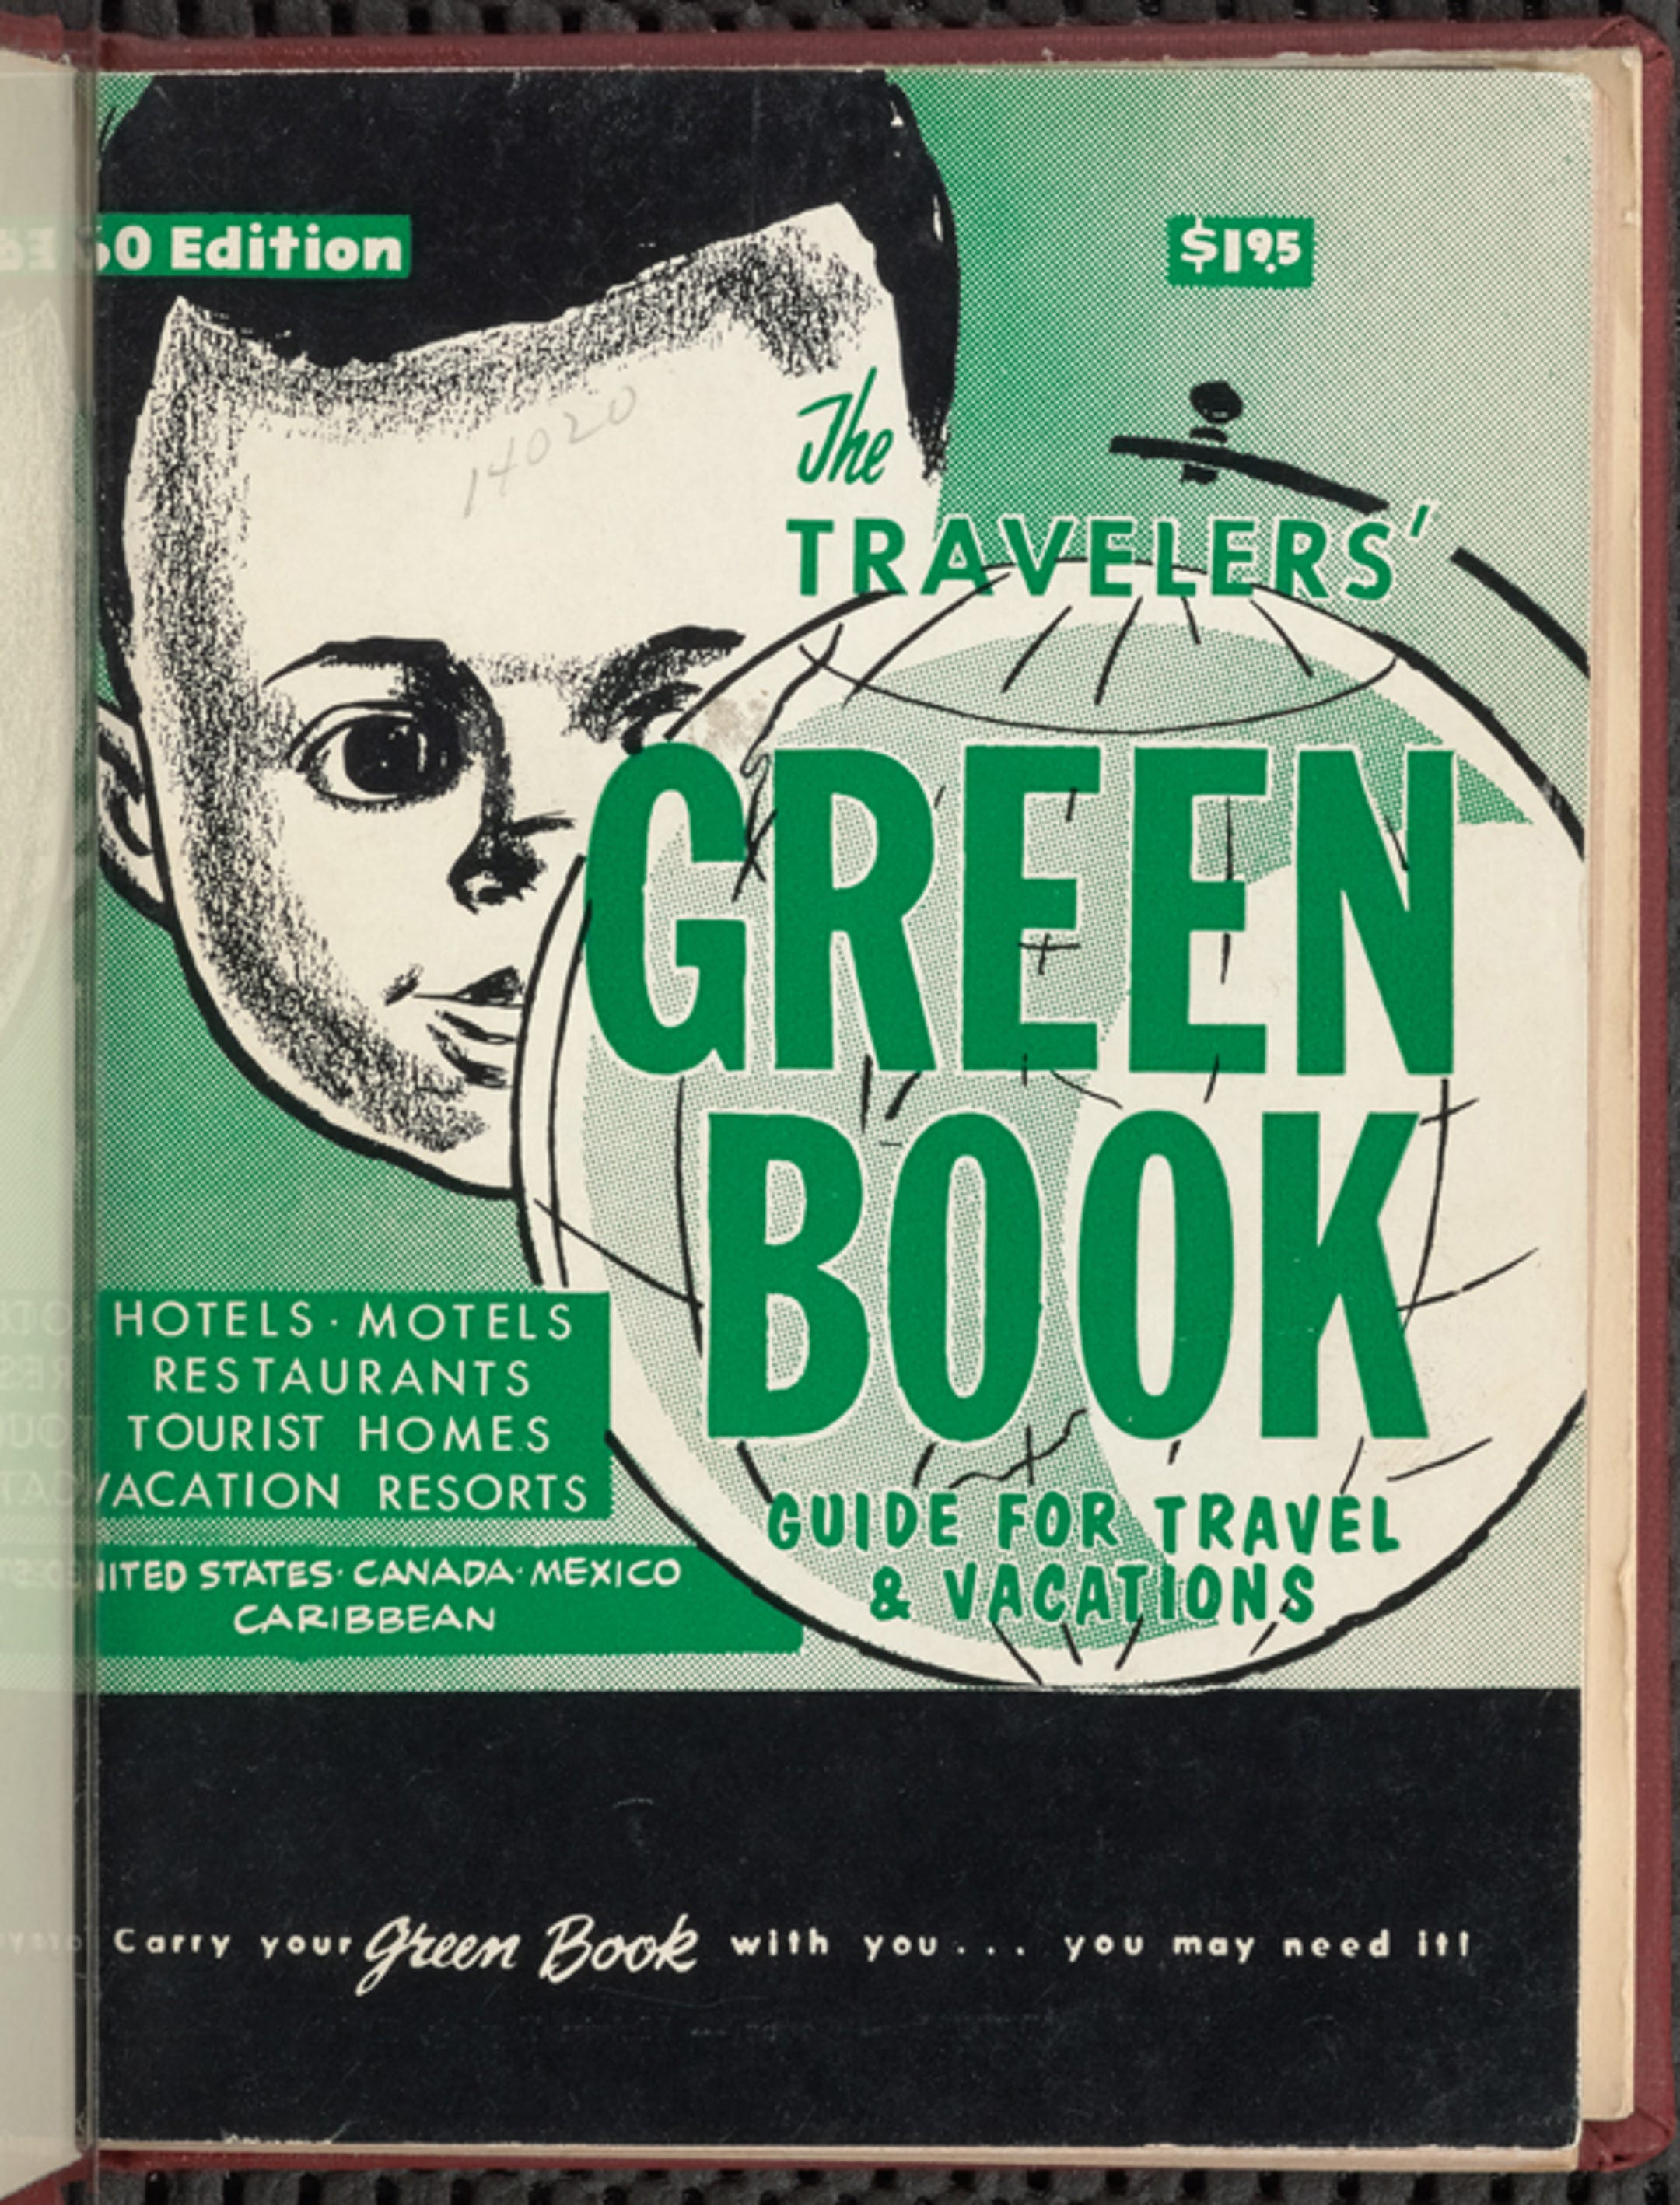 Original 'Green Book' Inspires New Generation of Black Travel Guides, Podcasts